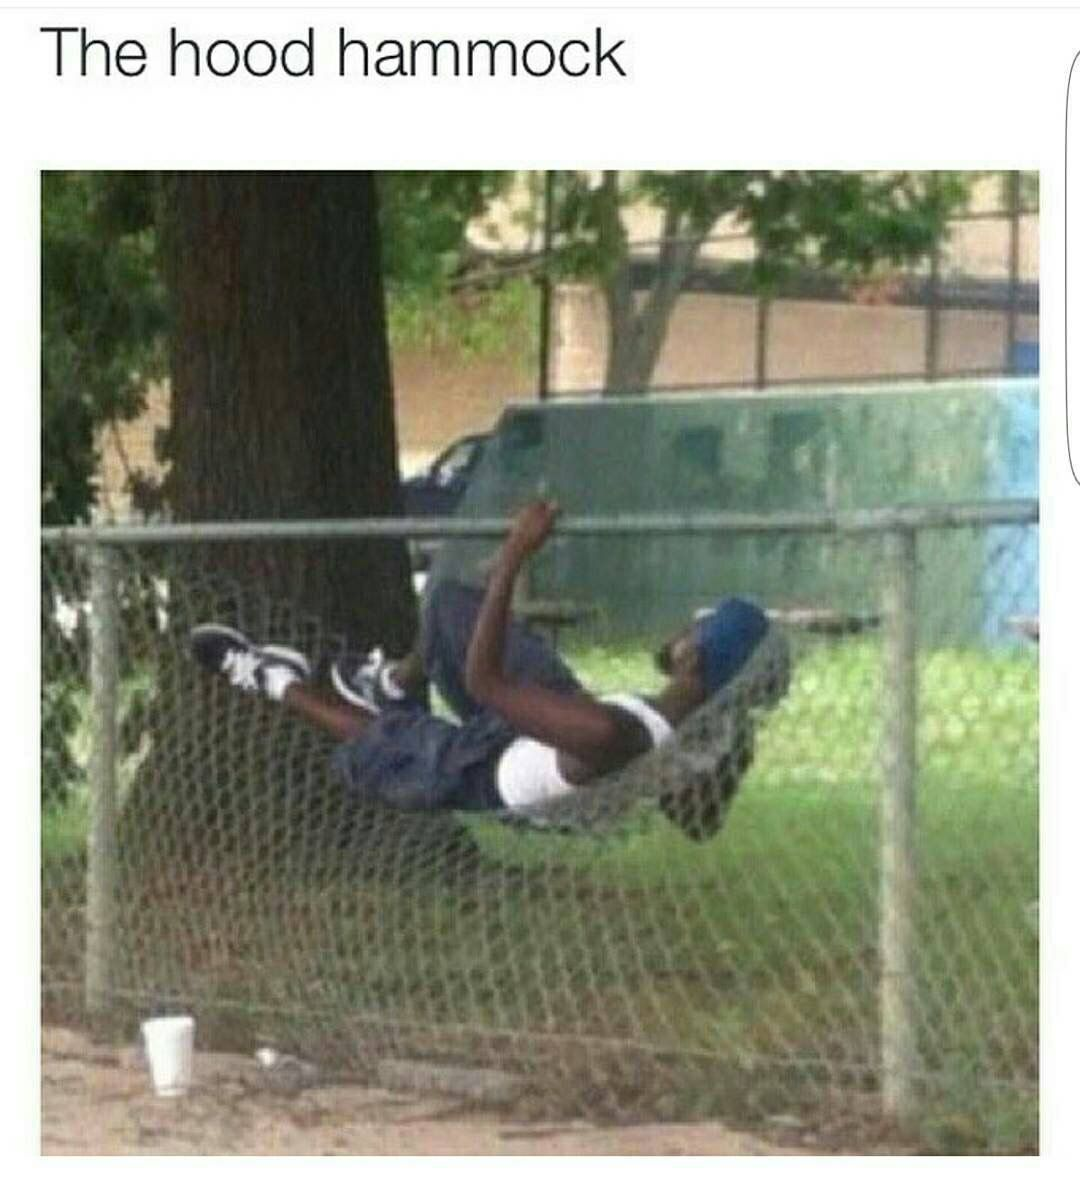 28 Fresh Memes To Make You Laugh Funny Ghetto Memes Ghetto Humor Funny Pictures